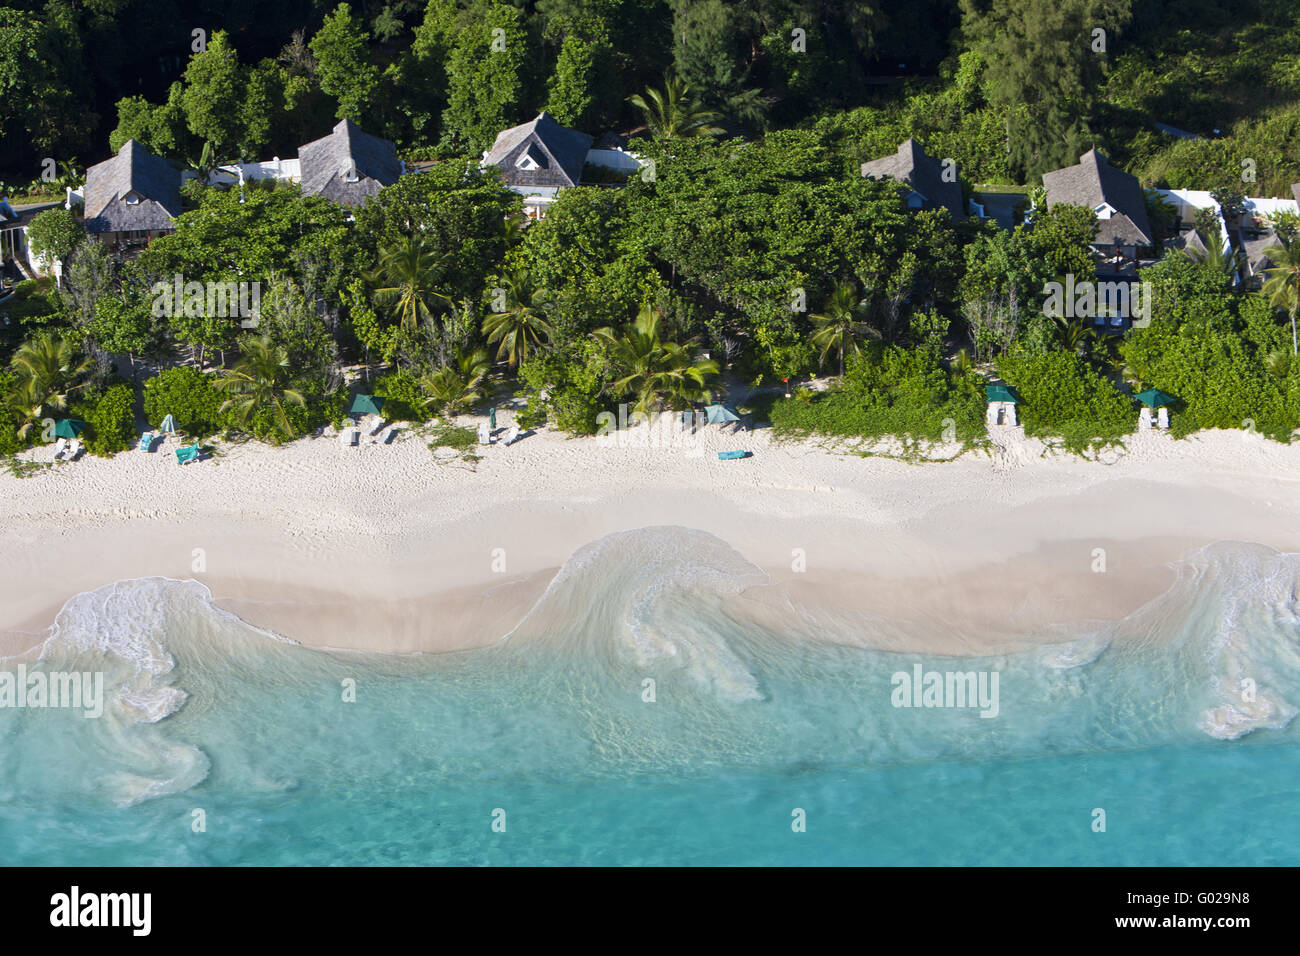 The Banyan Tree Hotel on the beach Anse Intendance - Stock Image